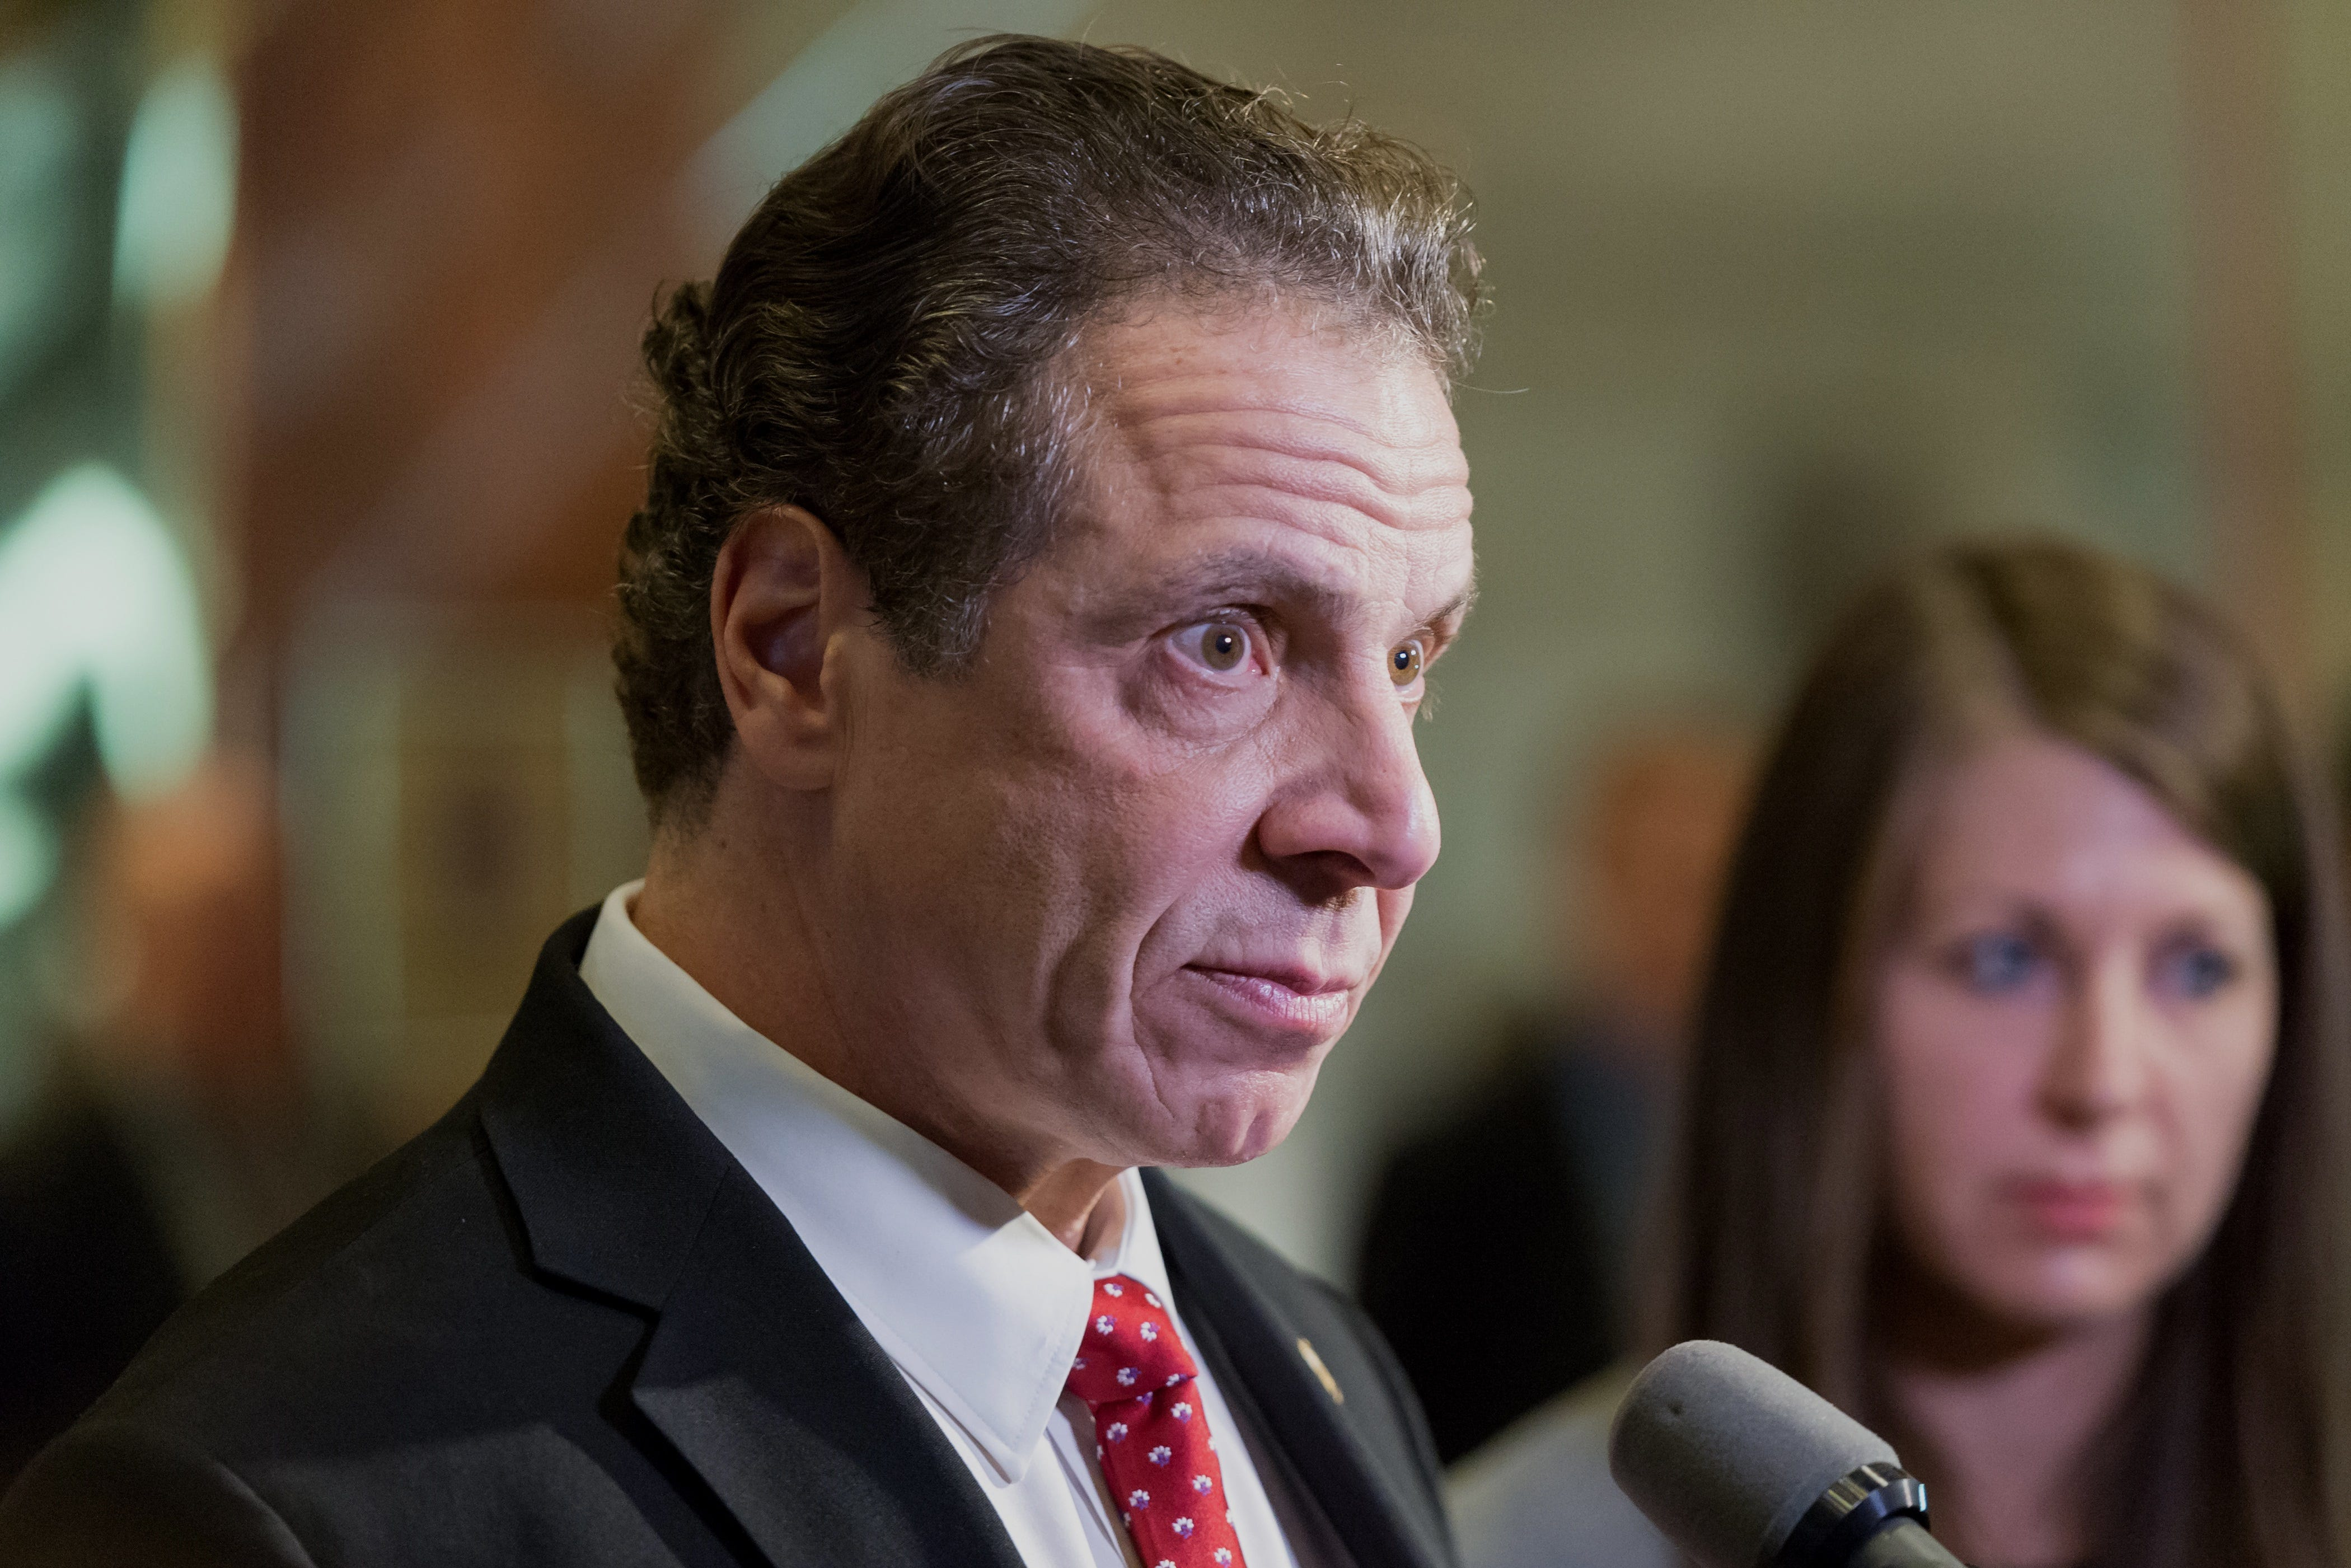 Live From Albany: What do you want to see Cuomo, lawmakers tackle in 2019?